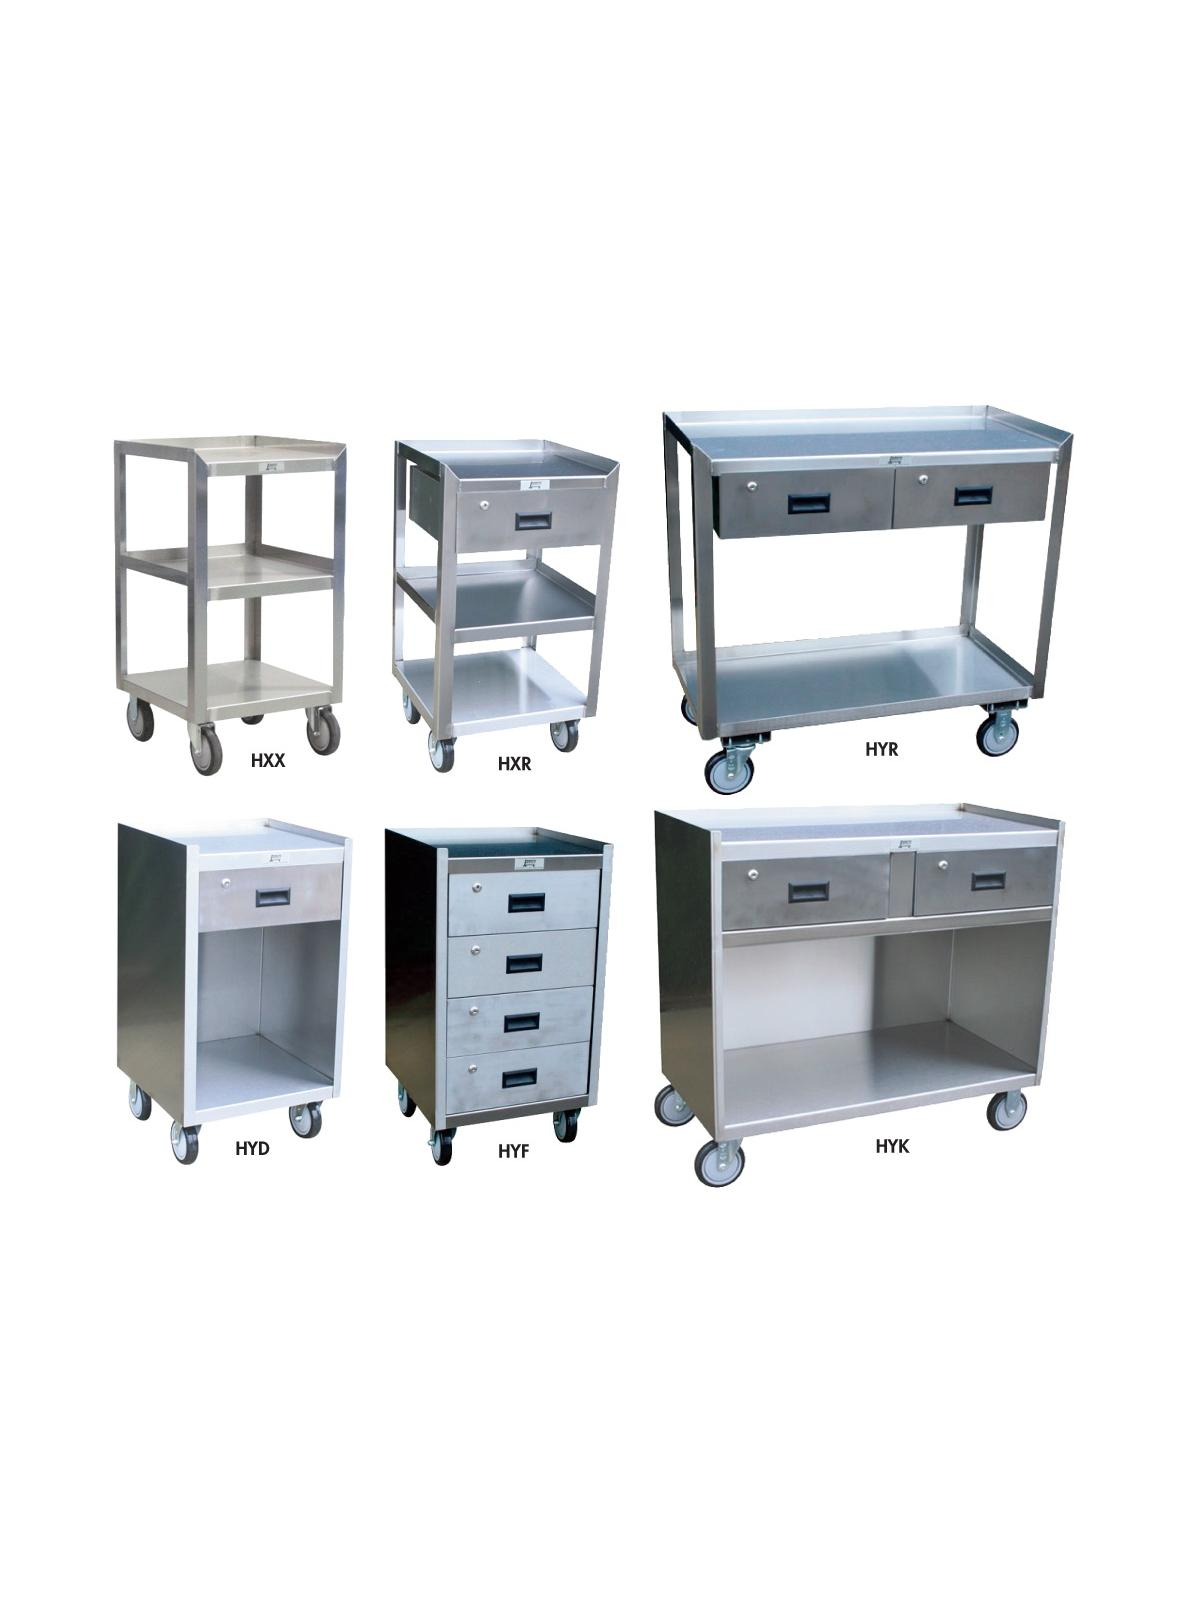 Stainless Steel Mobile Work Stands At Nationwide